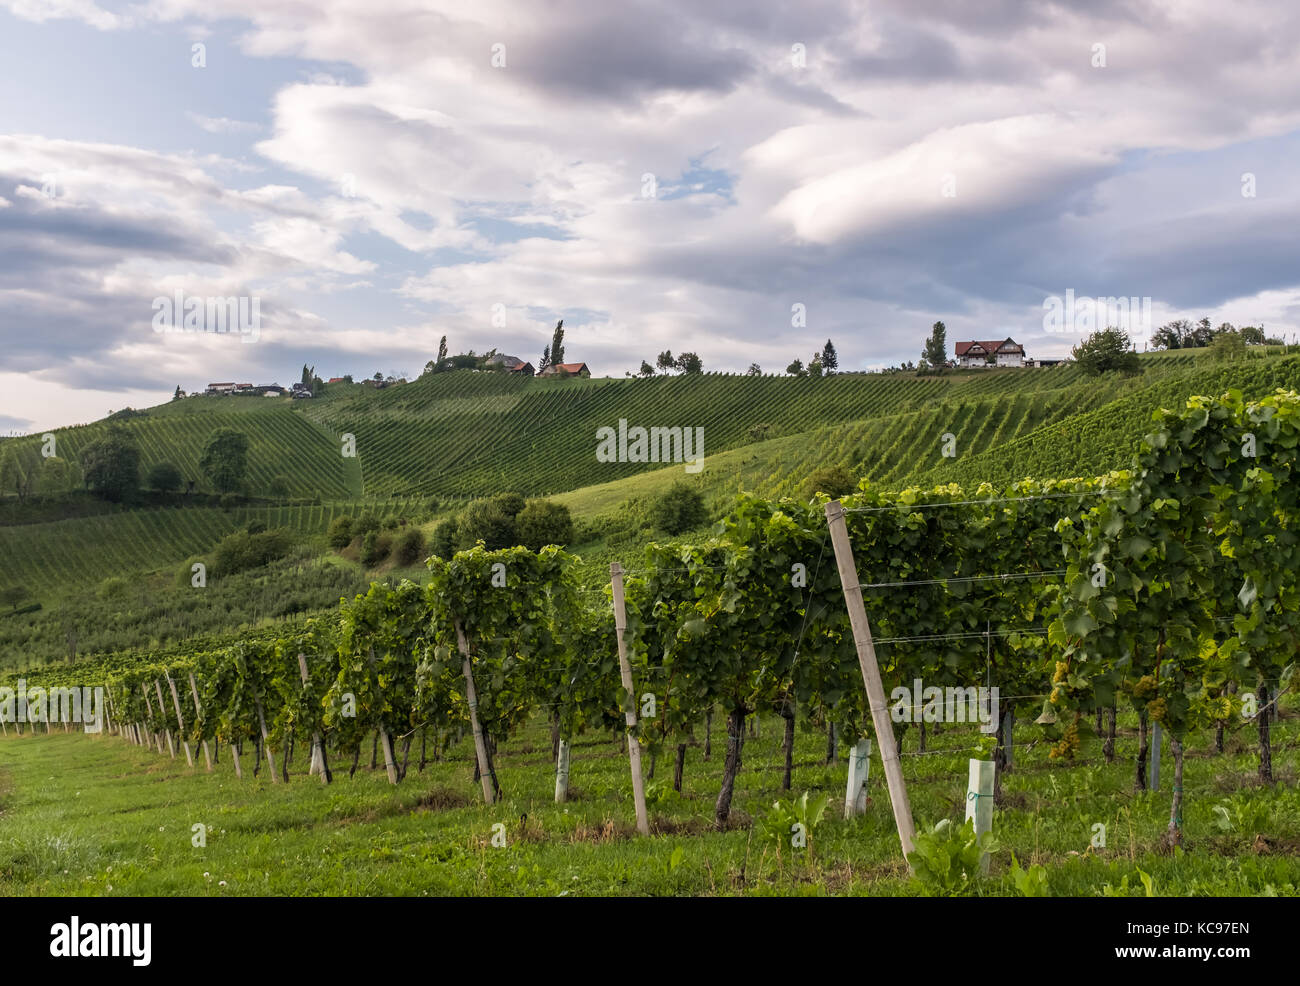 Vineyard along the south Styrian vine route in Austria, Europe - Stock Image